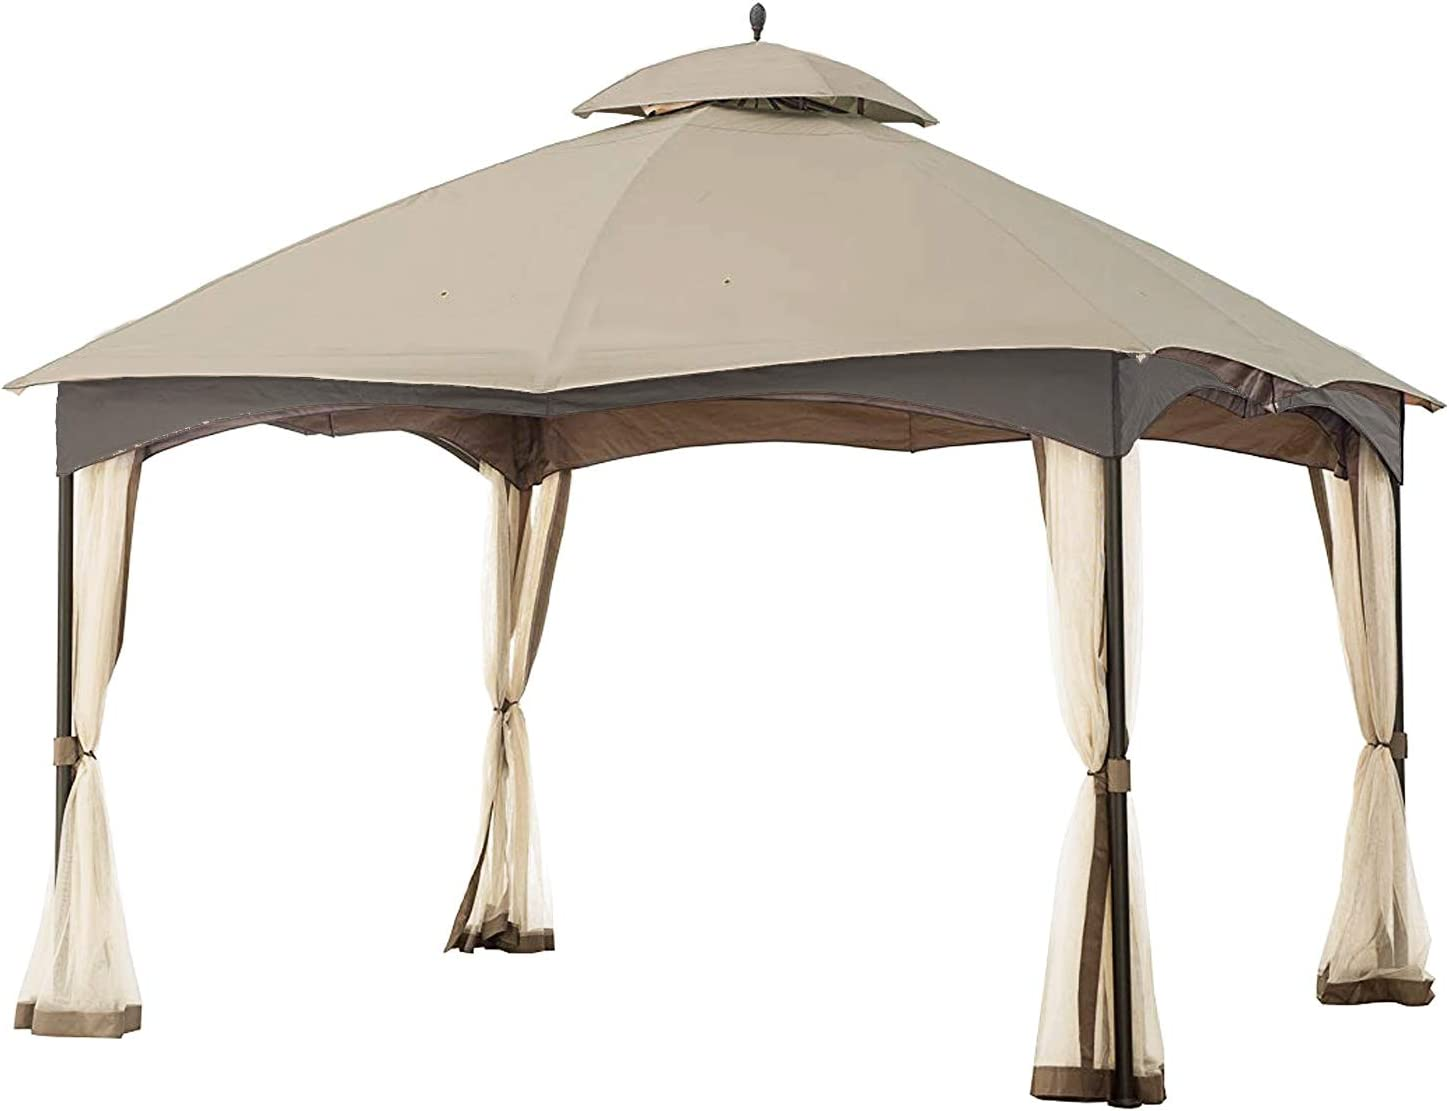 MASTERCANOPY Gazebo 12' x 10' Cabin-Style Soft Top Gazebo Top for Model L-GZ933PST, Beige (Only Top)